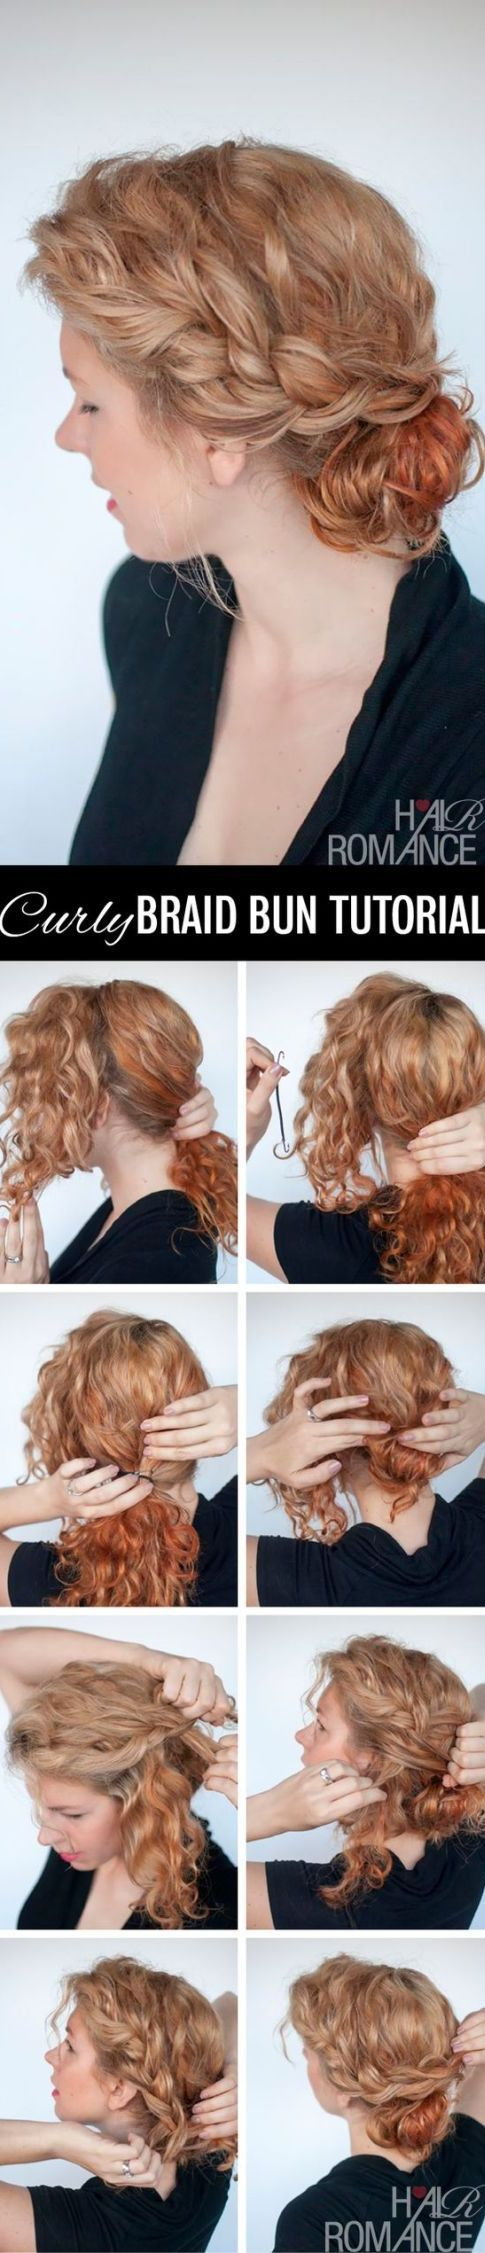 Braid bun tutorial for curly hair